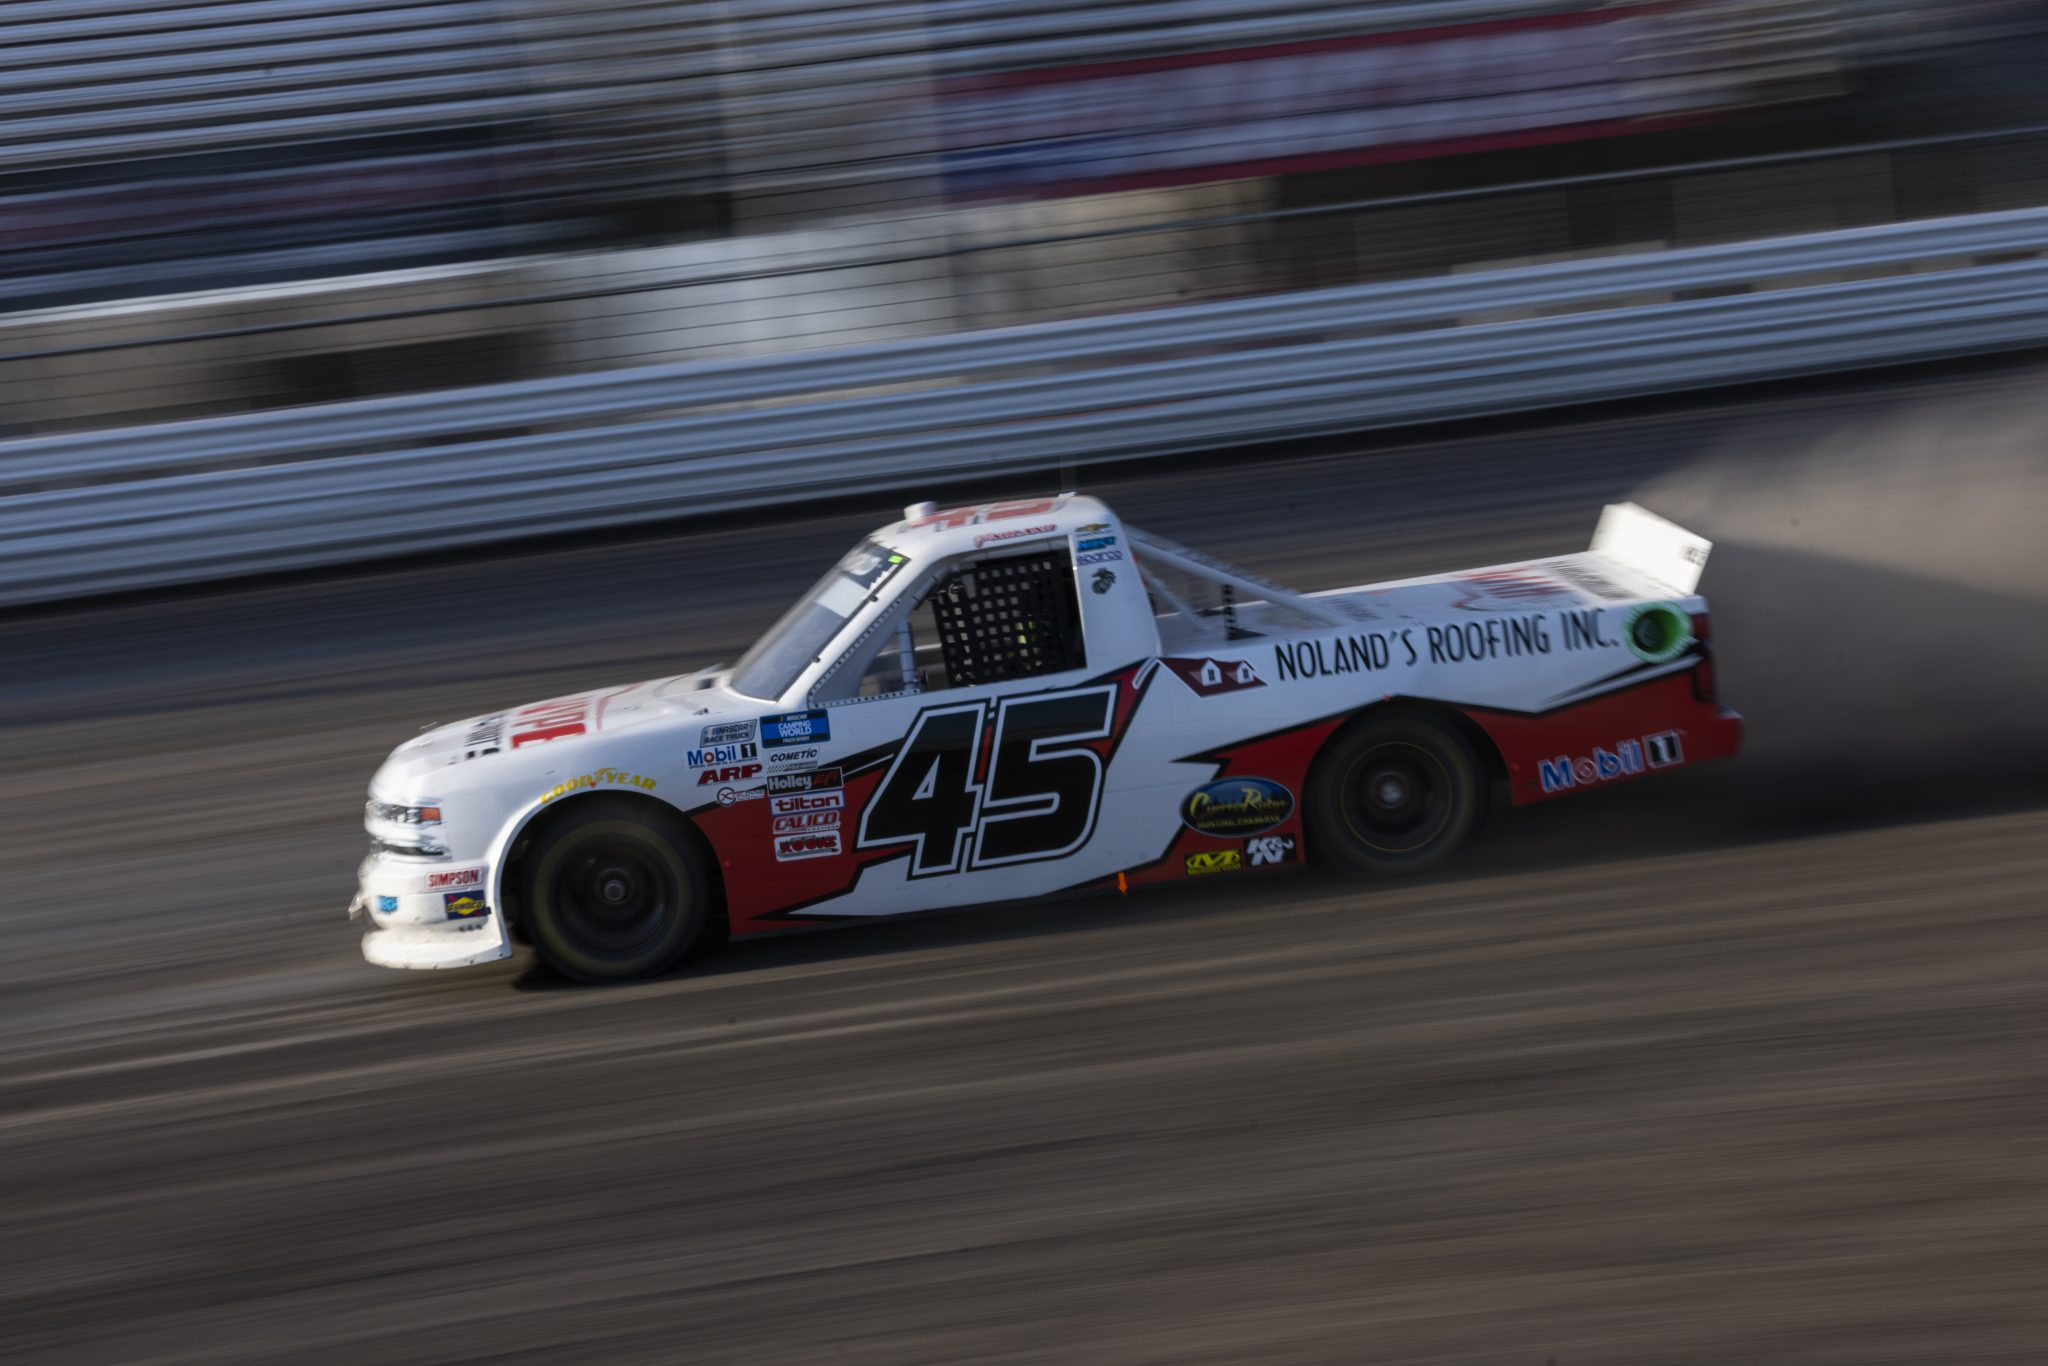 KNOXVILLE, IOWA - JULY 08: Jett Noland, driver of the #45 Hype Motorsports Chevrolet, drives during practice for the NASCAR Camping World Truck Series Corn Belt 150 presented by Premier Chevy Dealers at Knoxville Raceway on July 08, 2021 in Knoxville, Iowa. (Photo by James Gilbert/Getty Images) | Getty Images